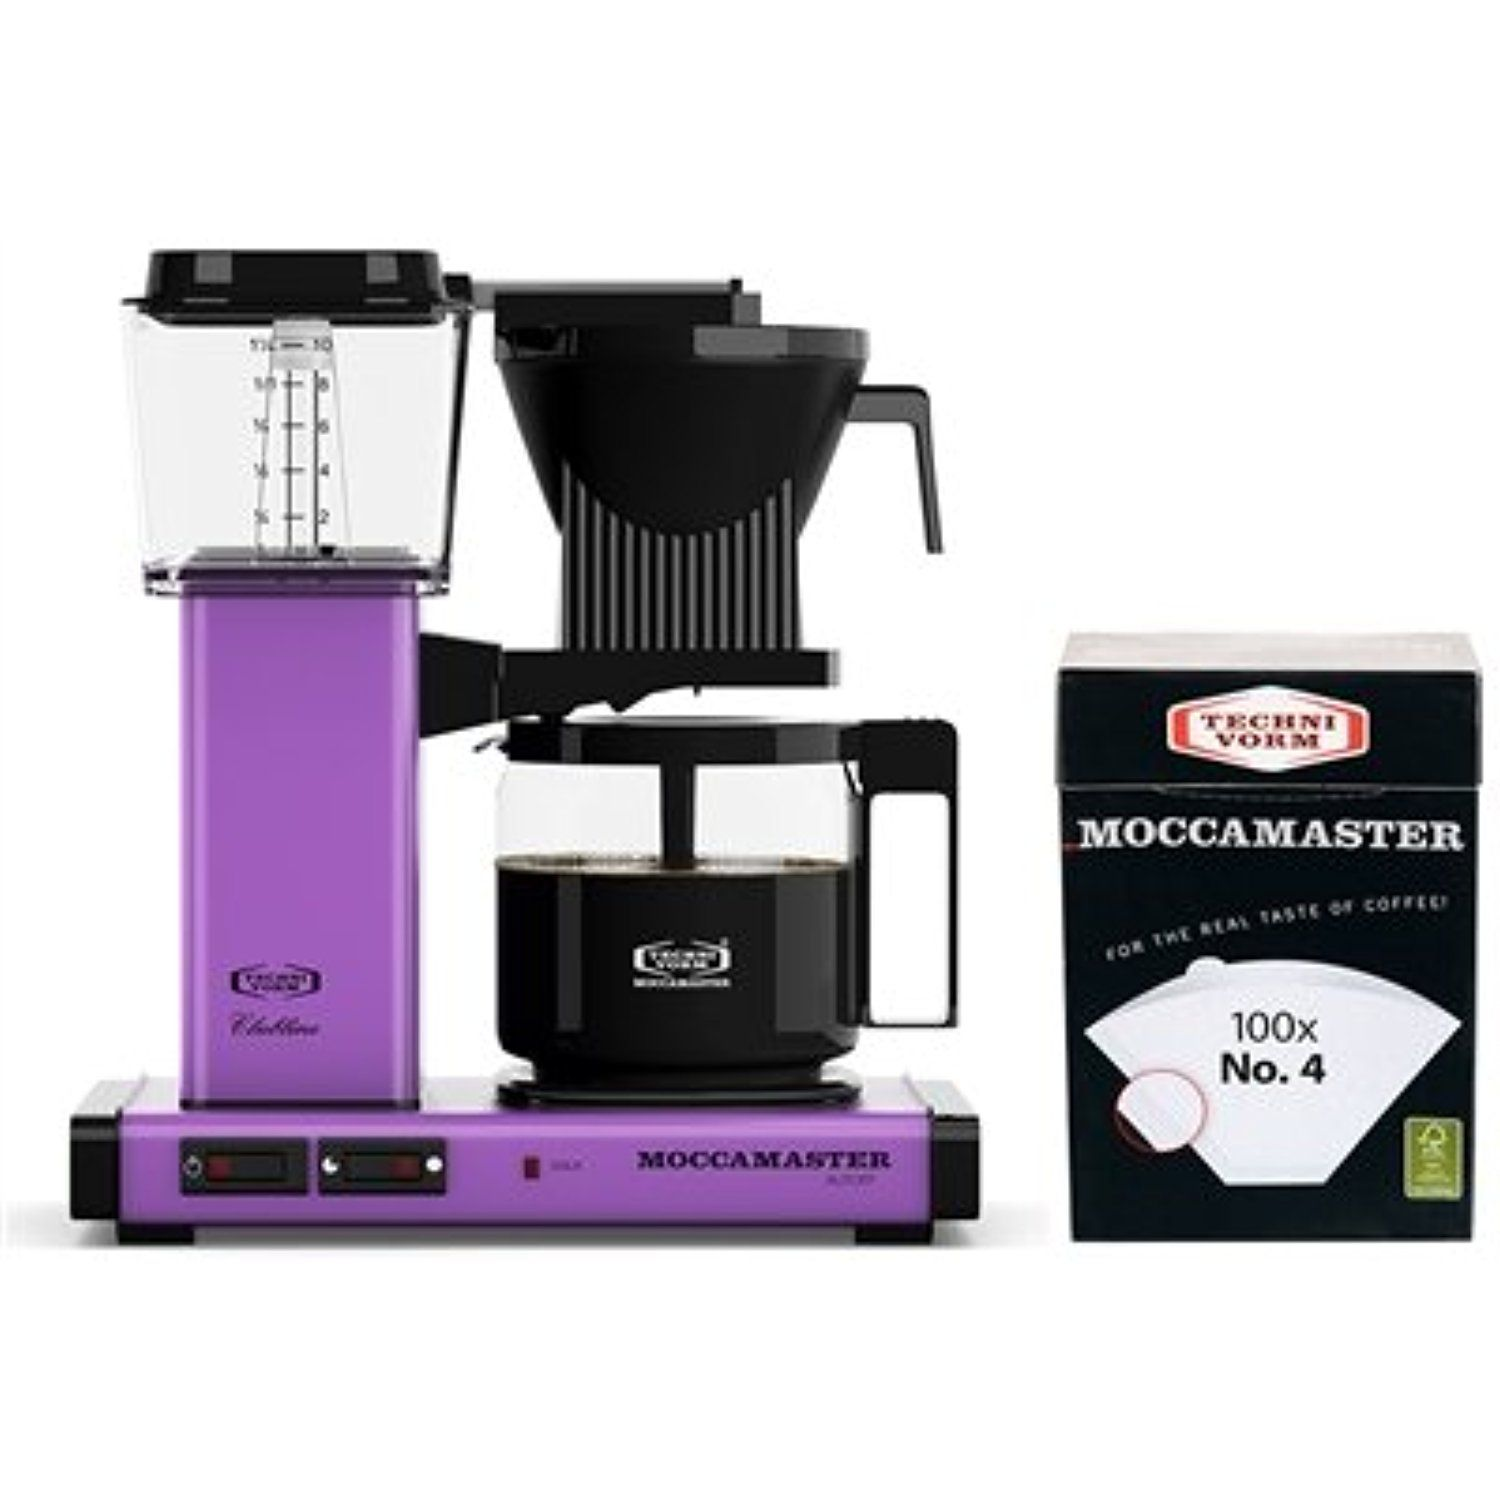 Technivorm Moccamaster KBG741 Coffee Brewer w/ No. 4